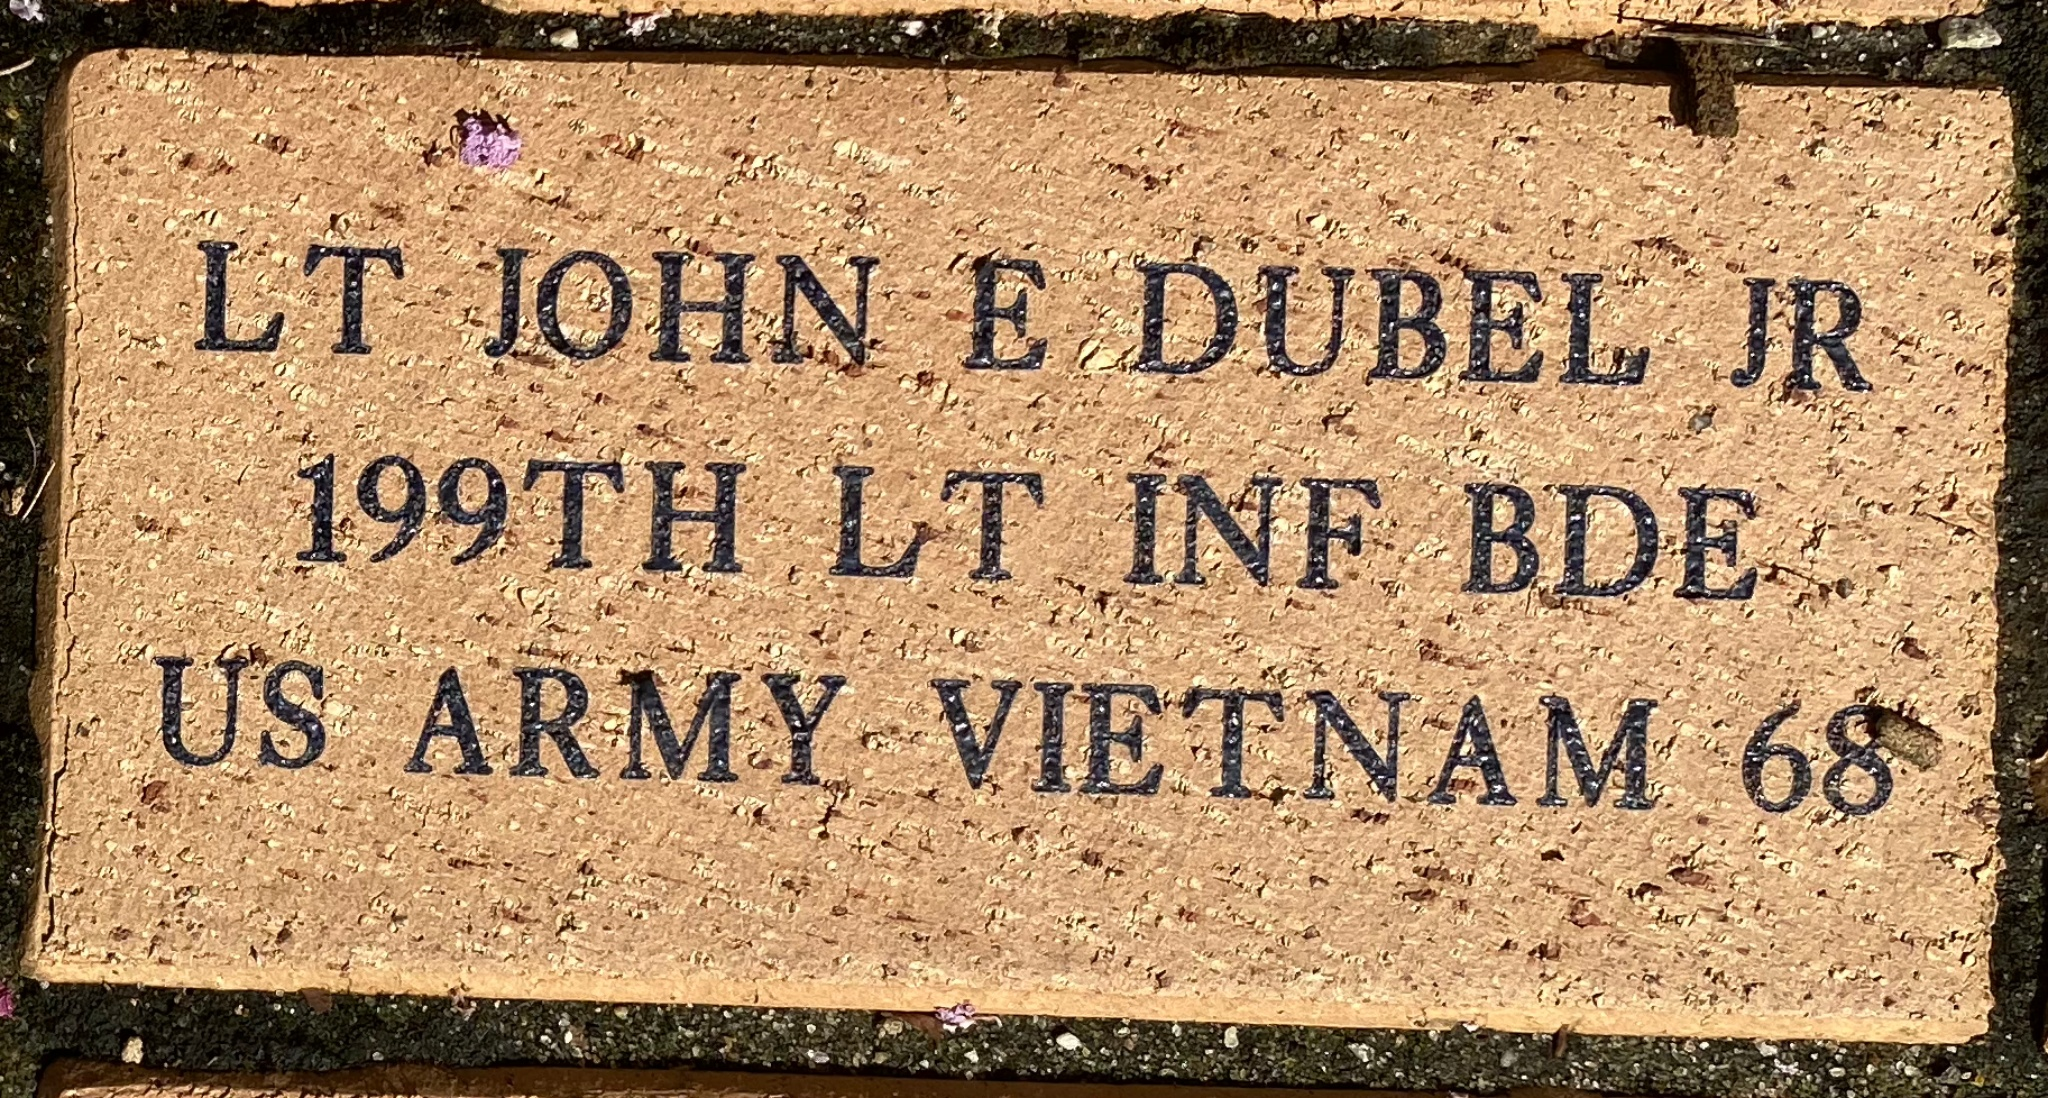 LT JOHN E DUBEL JR 199TH LT INF BDE US ARMY VIETNAM 68